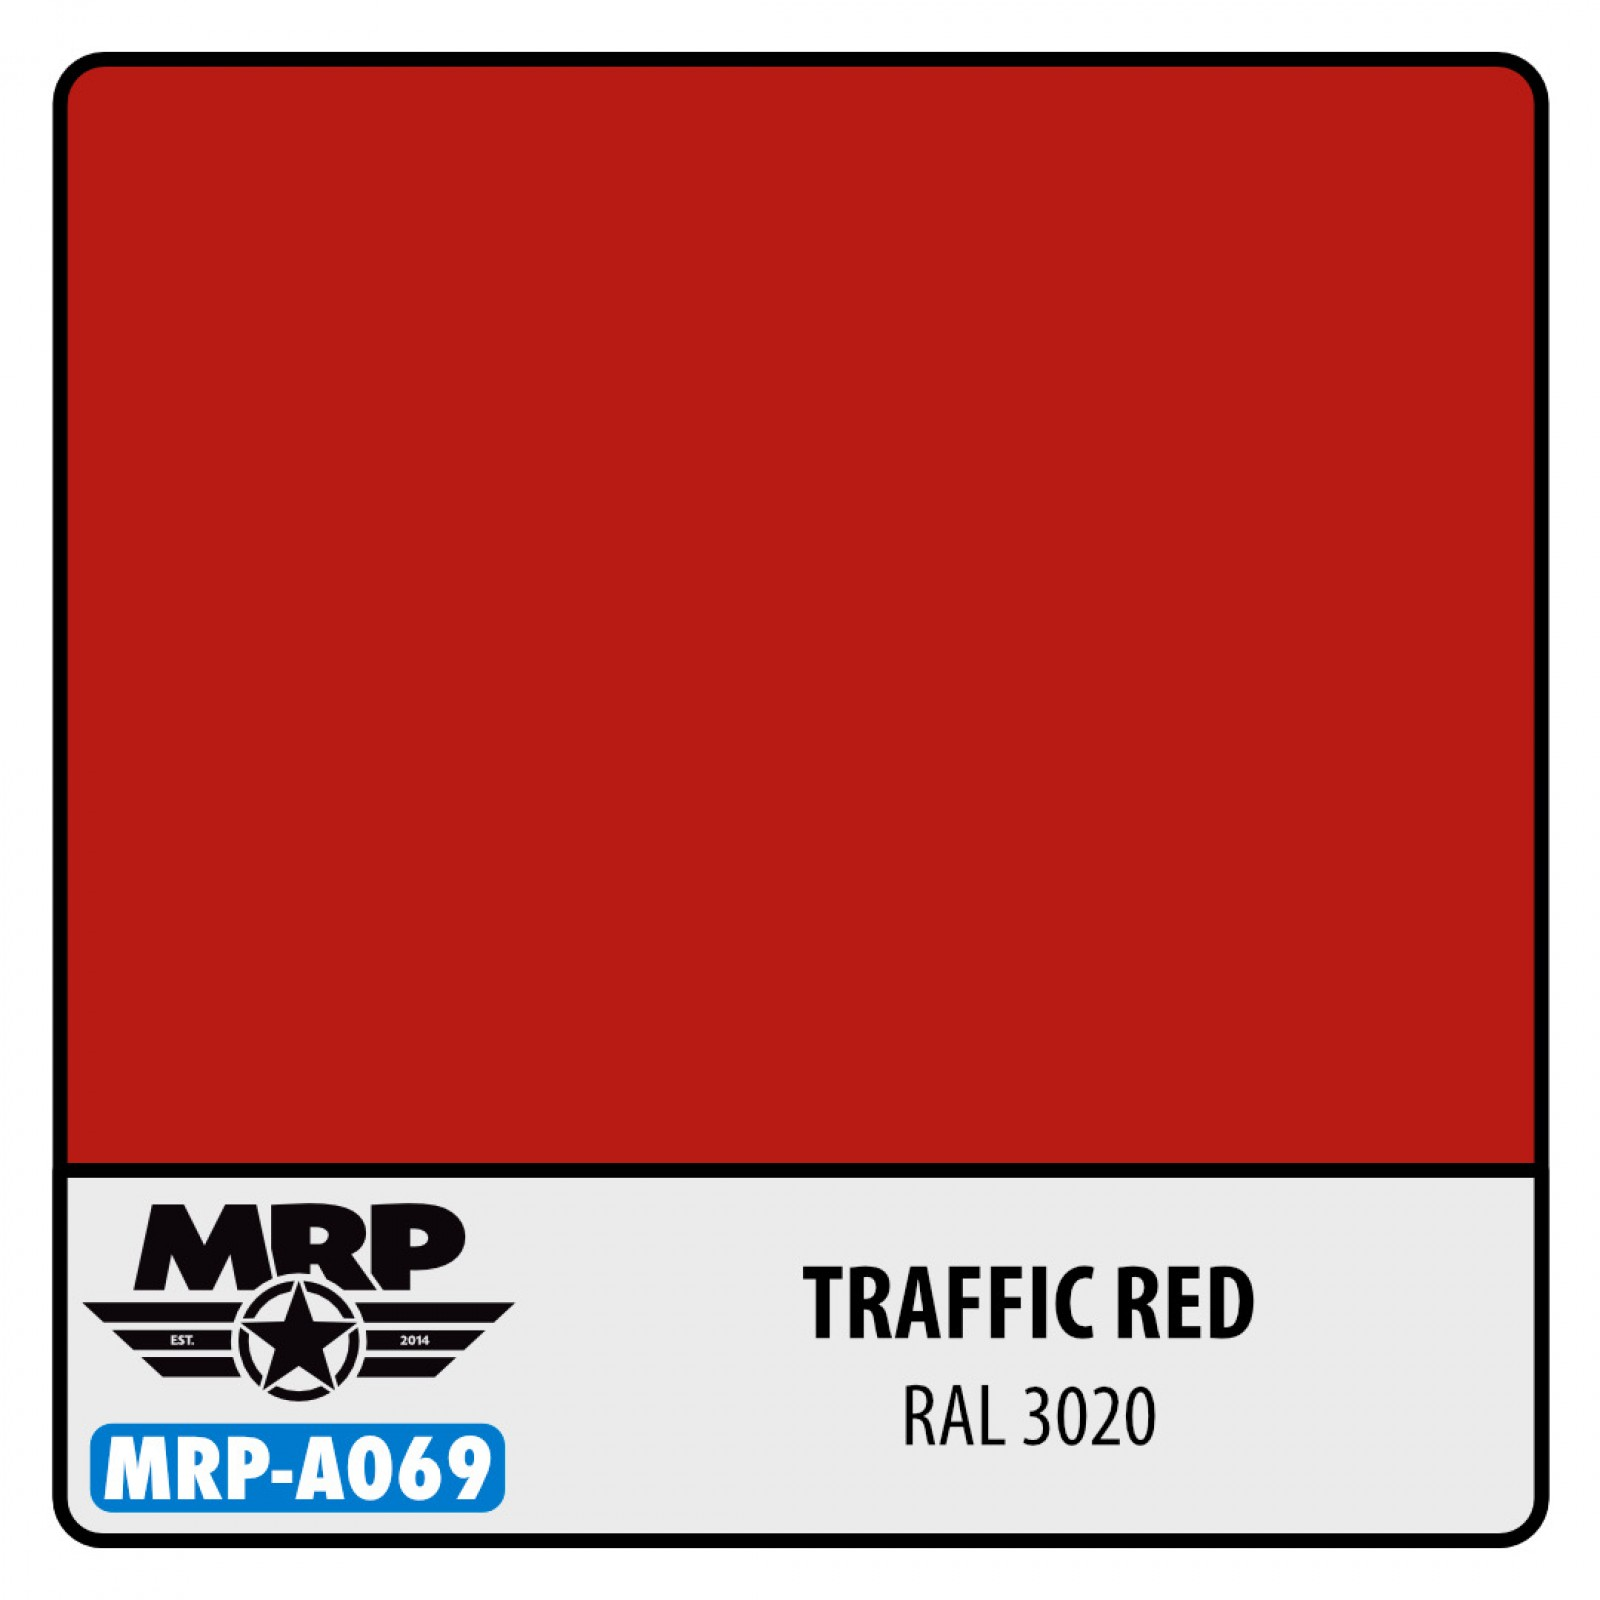 MRP-A069  Traffic Red RAL 3020